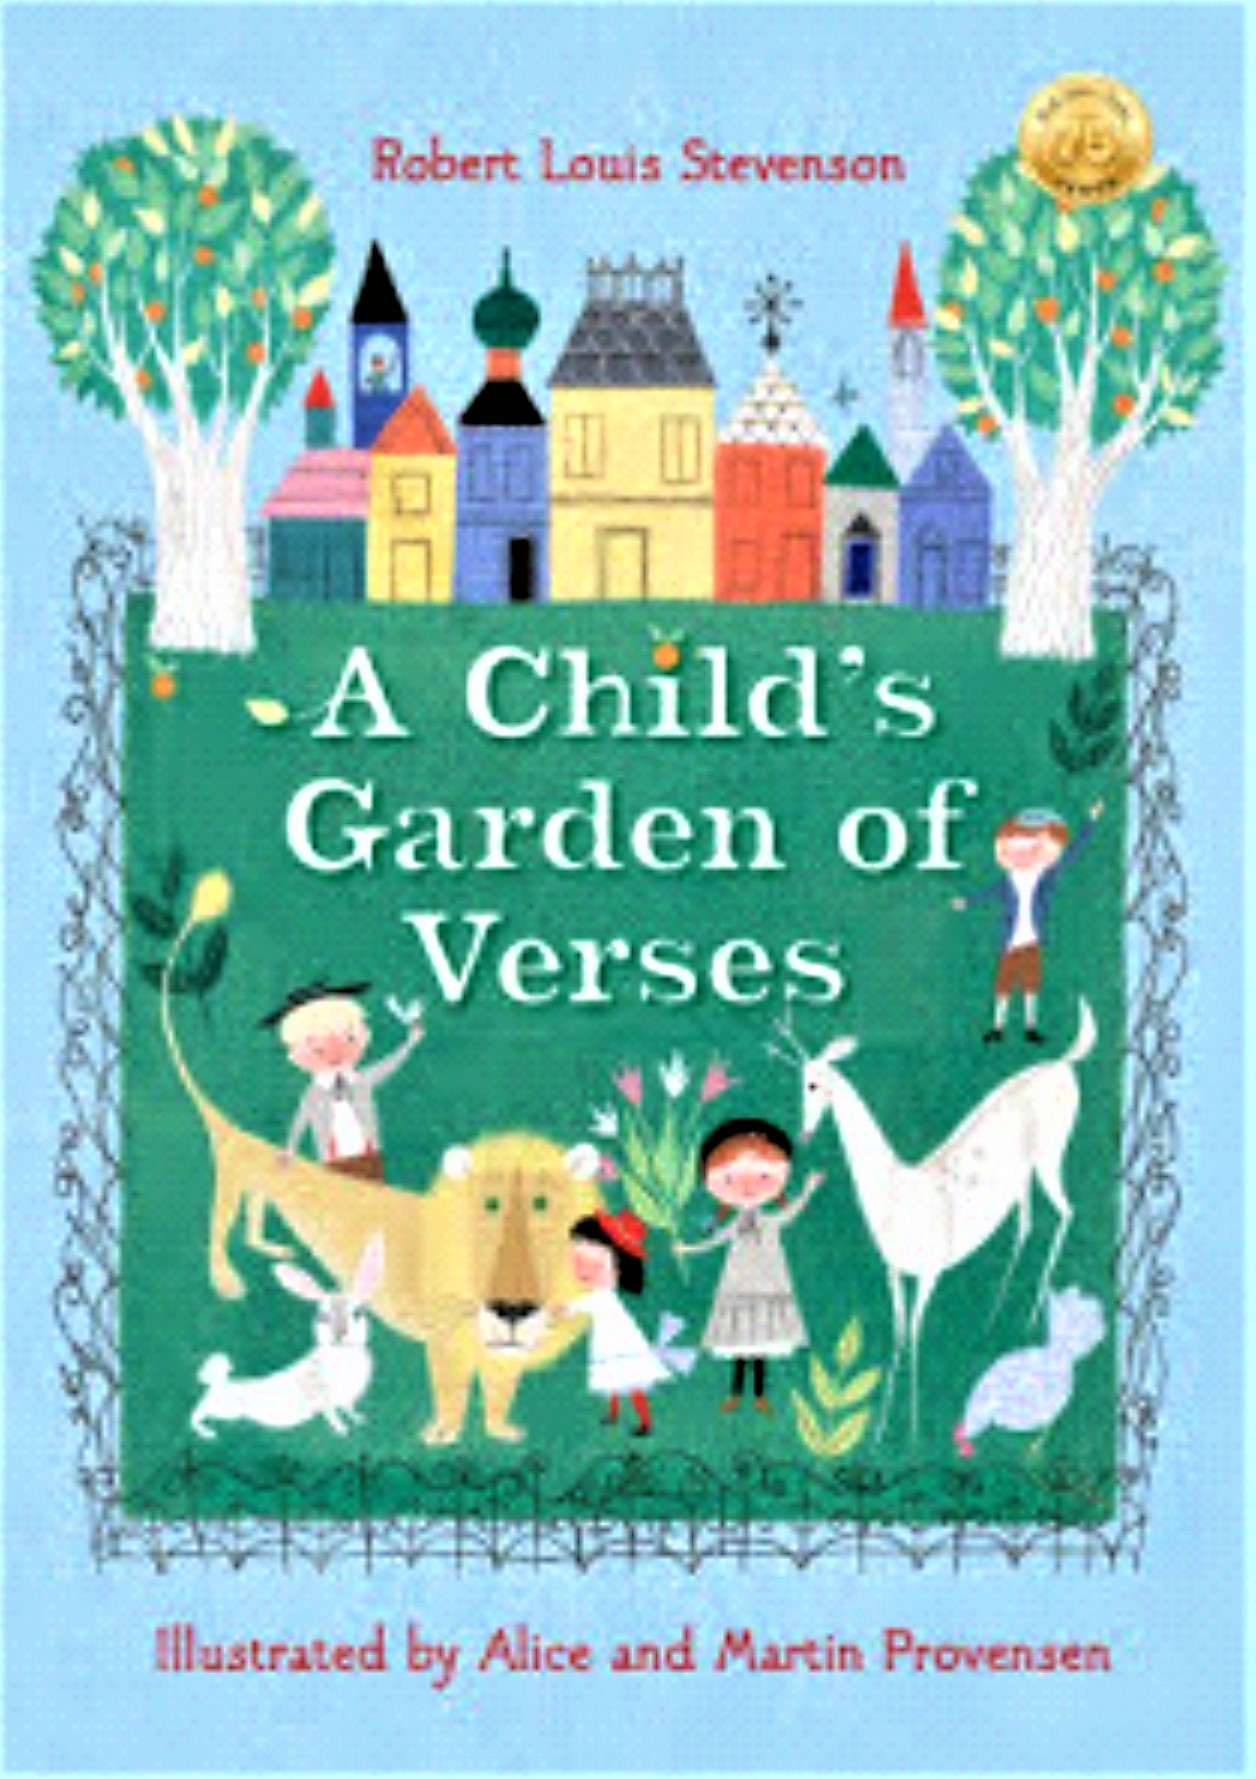 A green and blue book cover, with a castle, title: A Child's Garden of Verses